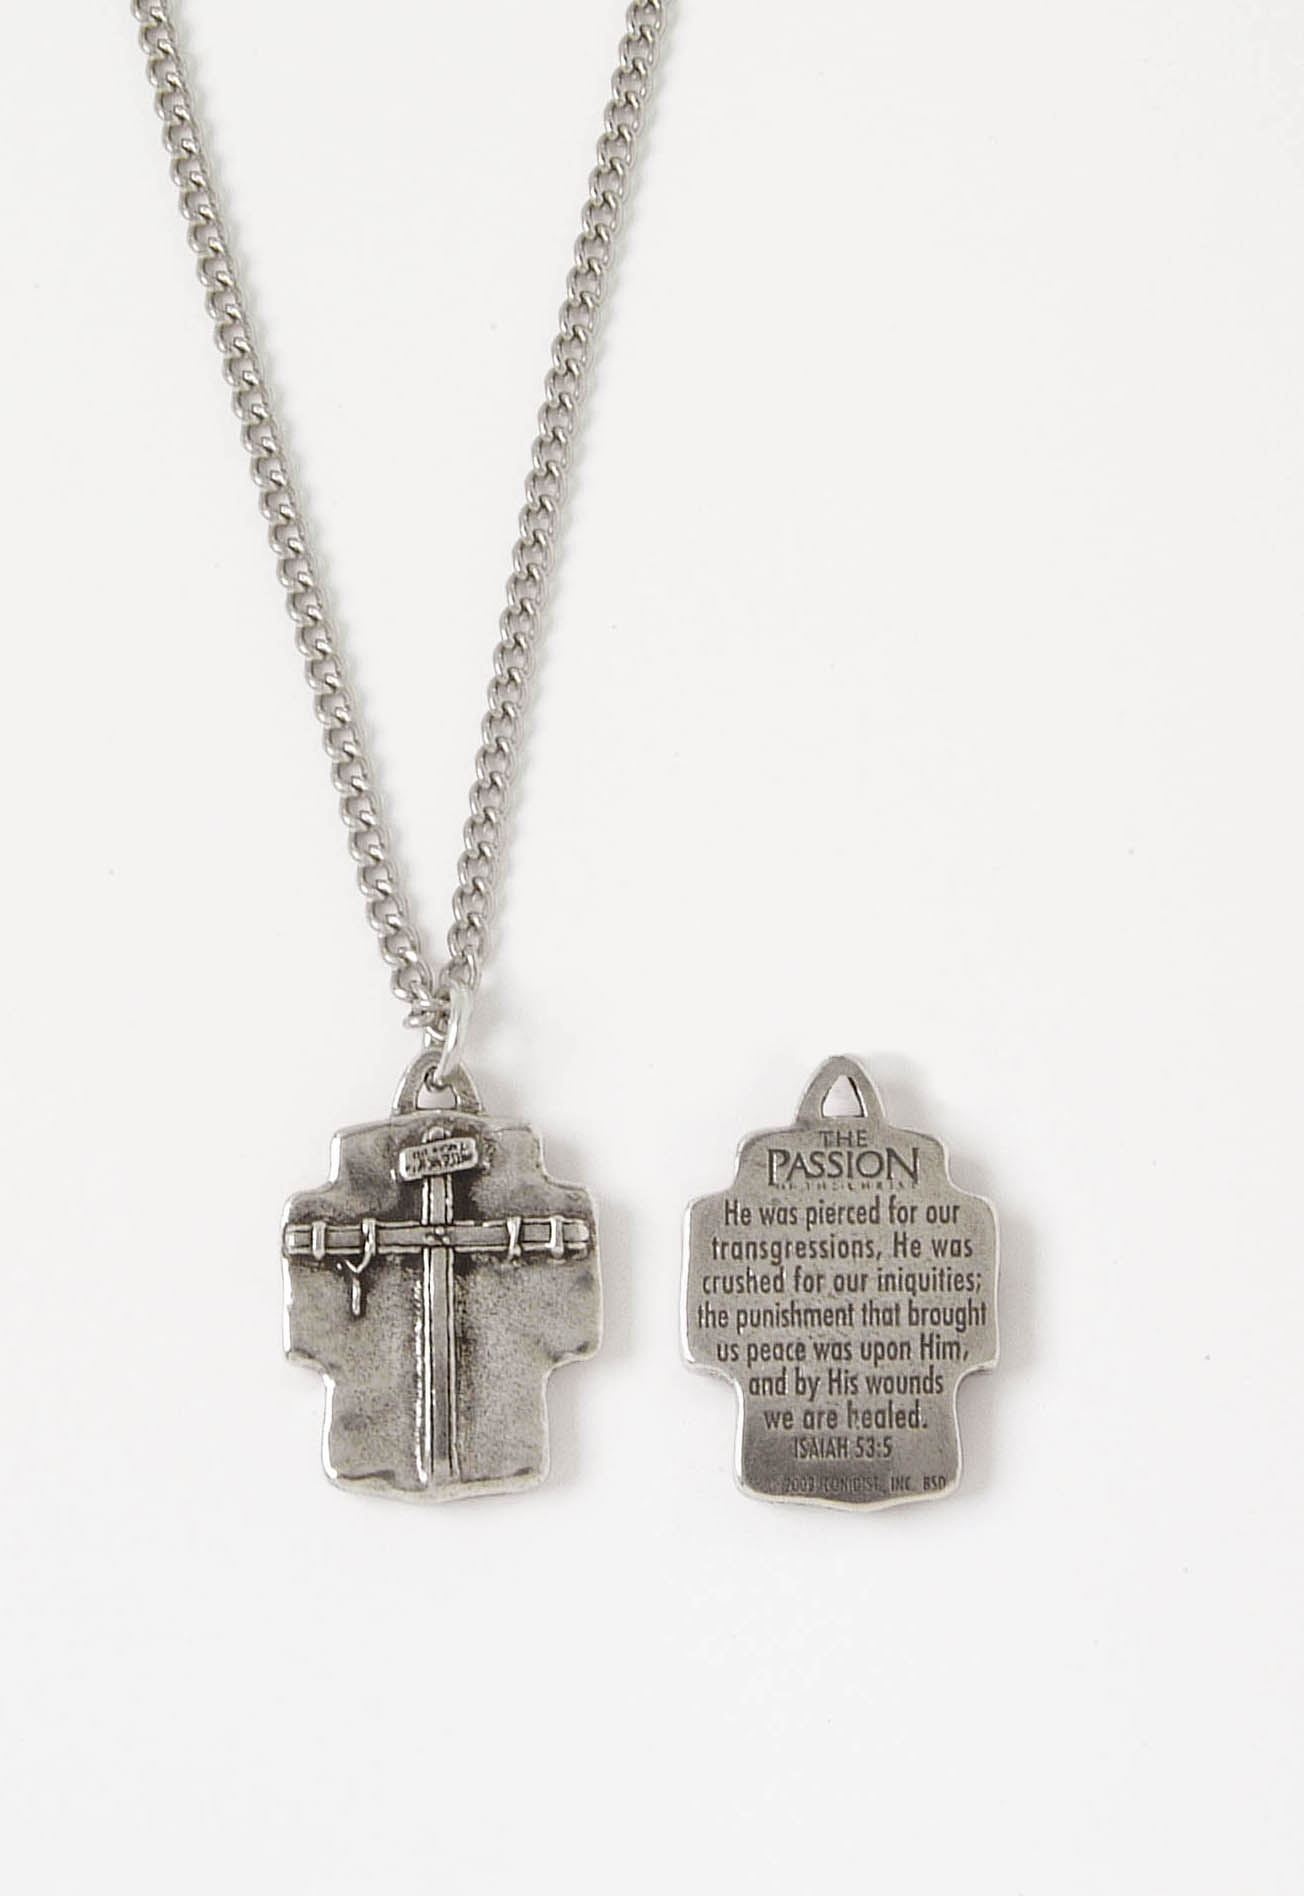 Kinder, Gentler Jewelry From The Passion of the Christ